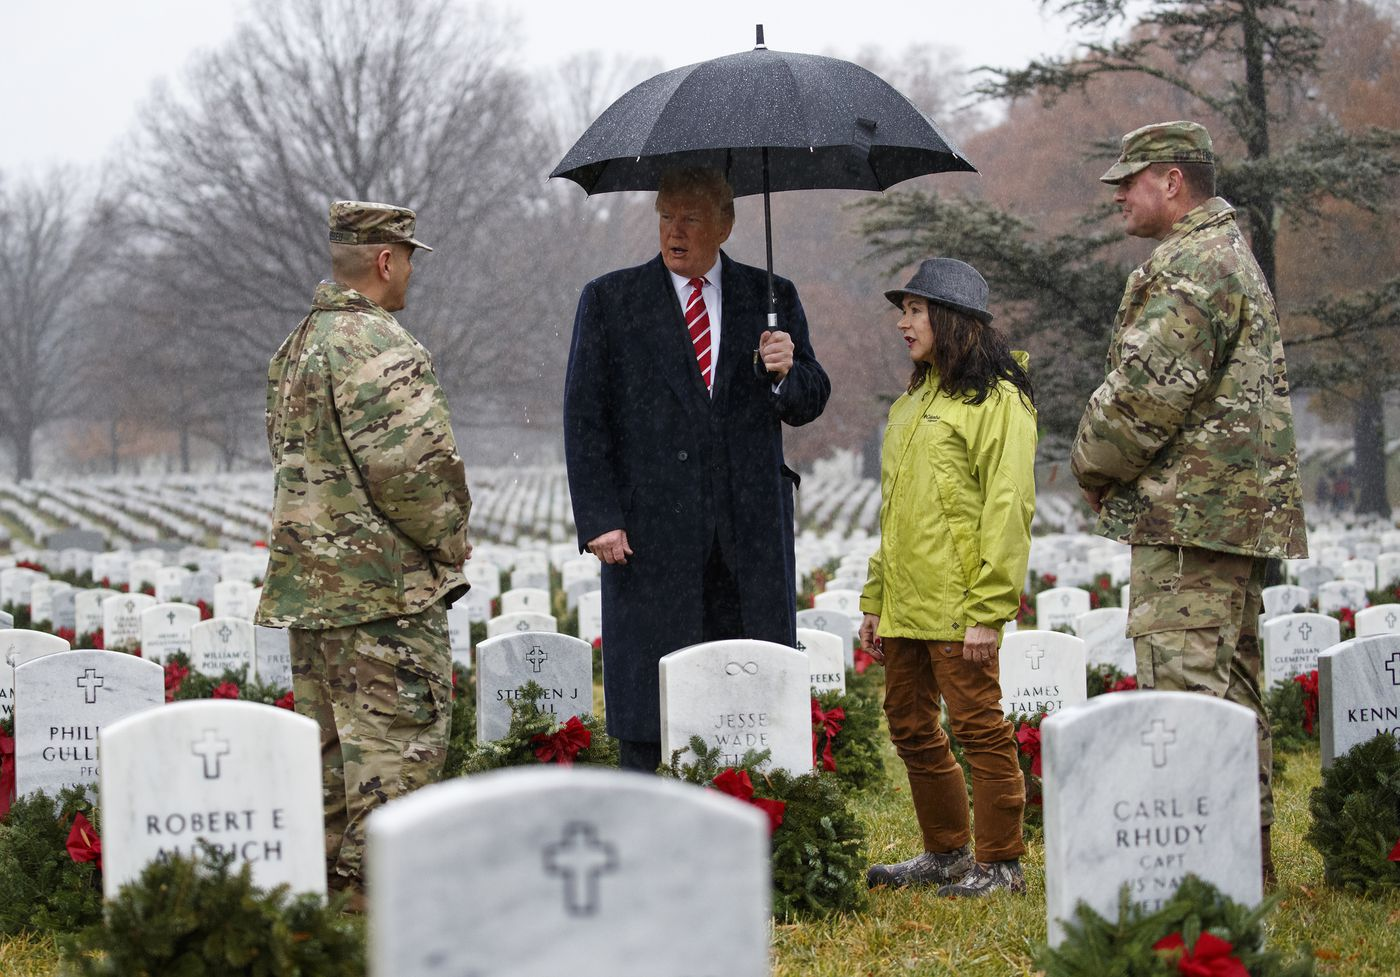 President Donald Trump pauses and talks as he visits Section 60 at Arlington National Cemetery in Arlington, Va., Saturday, Dec. 15, 2018, during Wreaths Across America Day. Wreaths Across America was started in 1992 at Arlington National Cemetery by Maine businessman Morrill Worcester and has expanded to hundreds of veterans' cemeteries and other locations in all 50 states and beyond. (AP Photo/Carolyn Kaster)